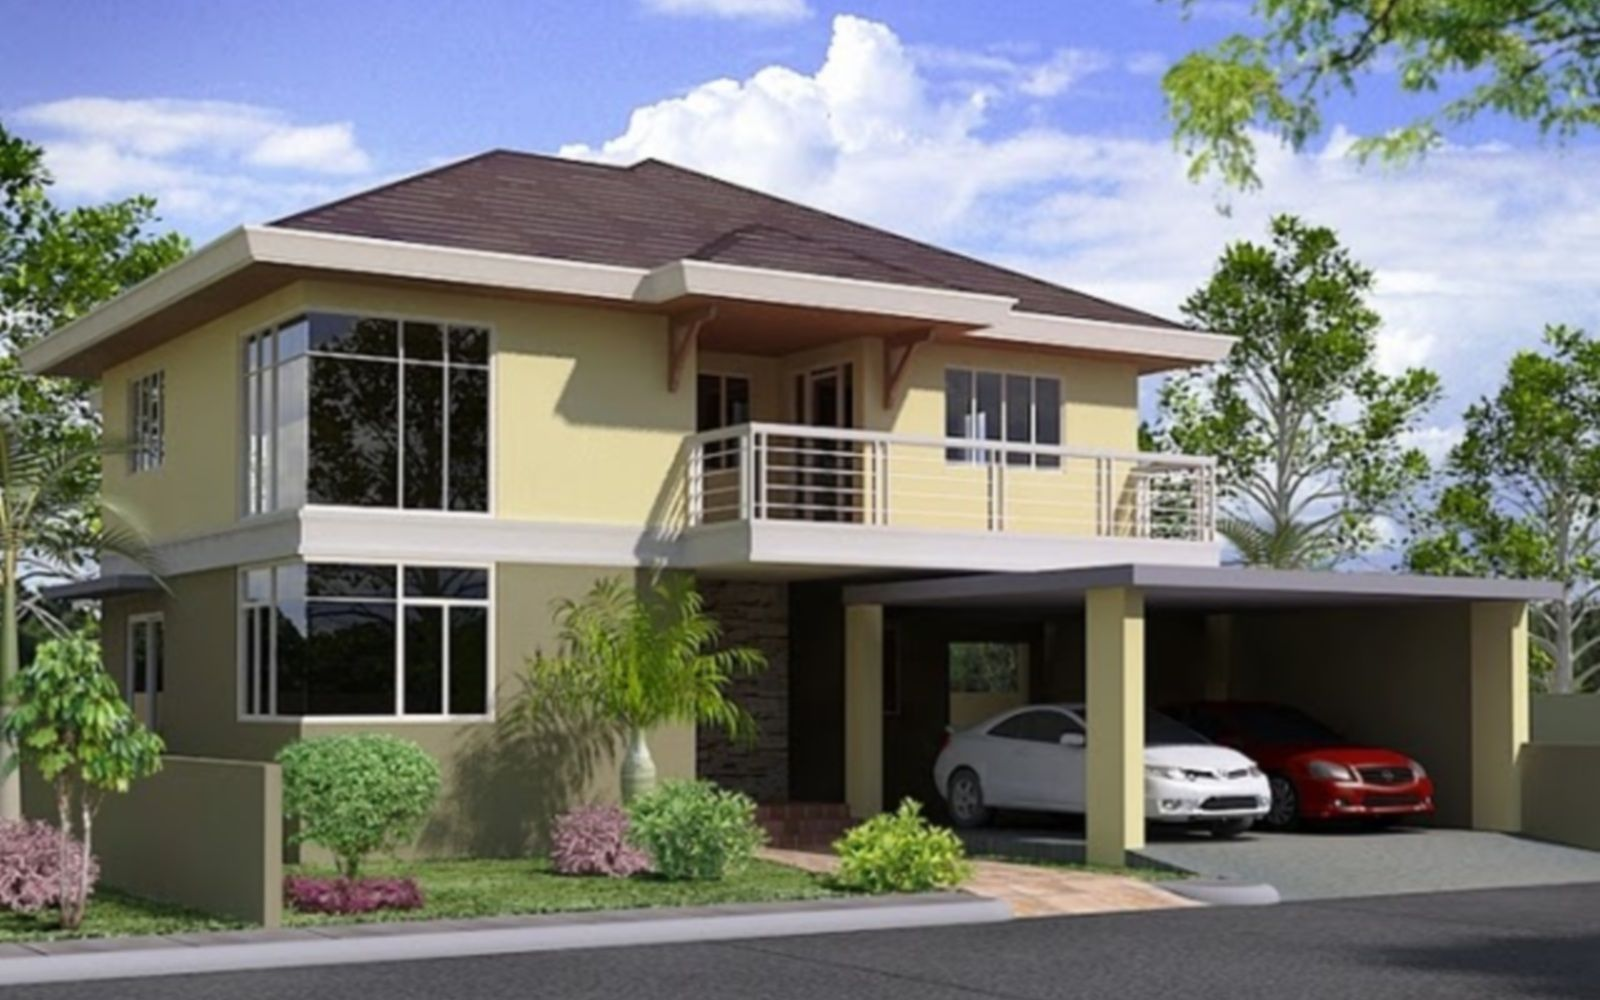 2 storey house design philippines modern house plan | 3 ...